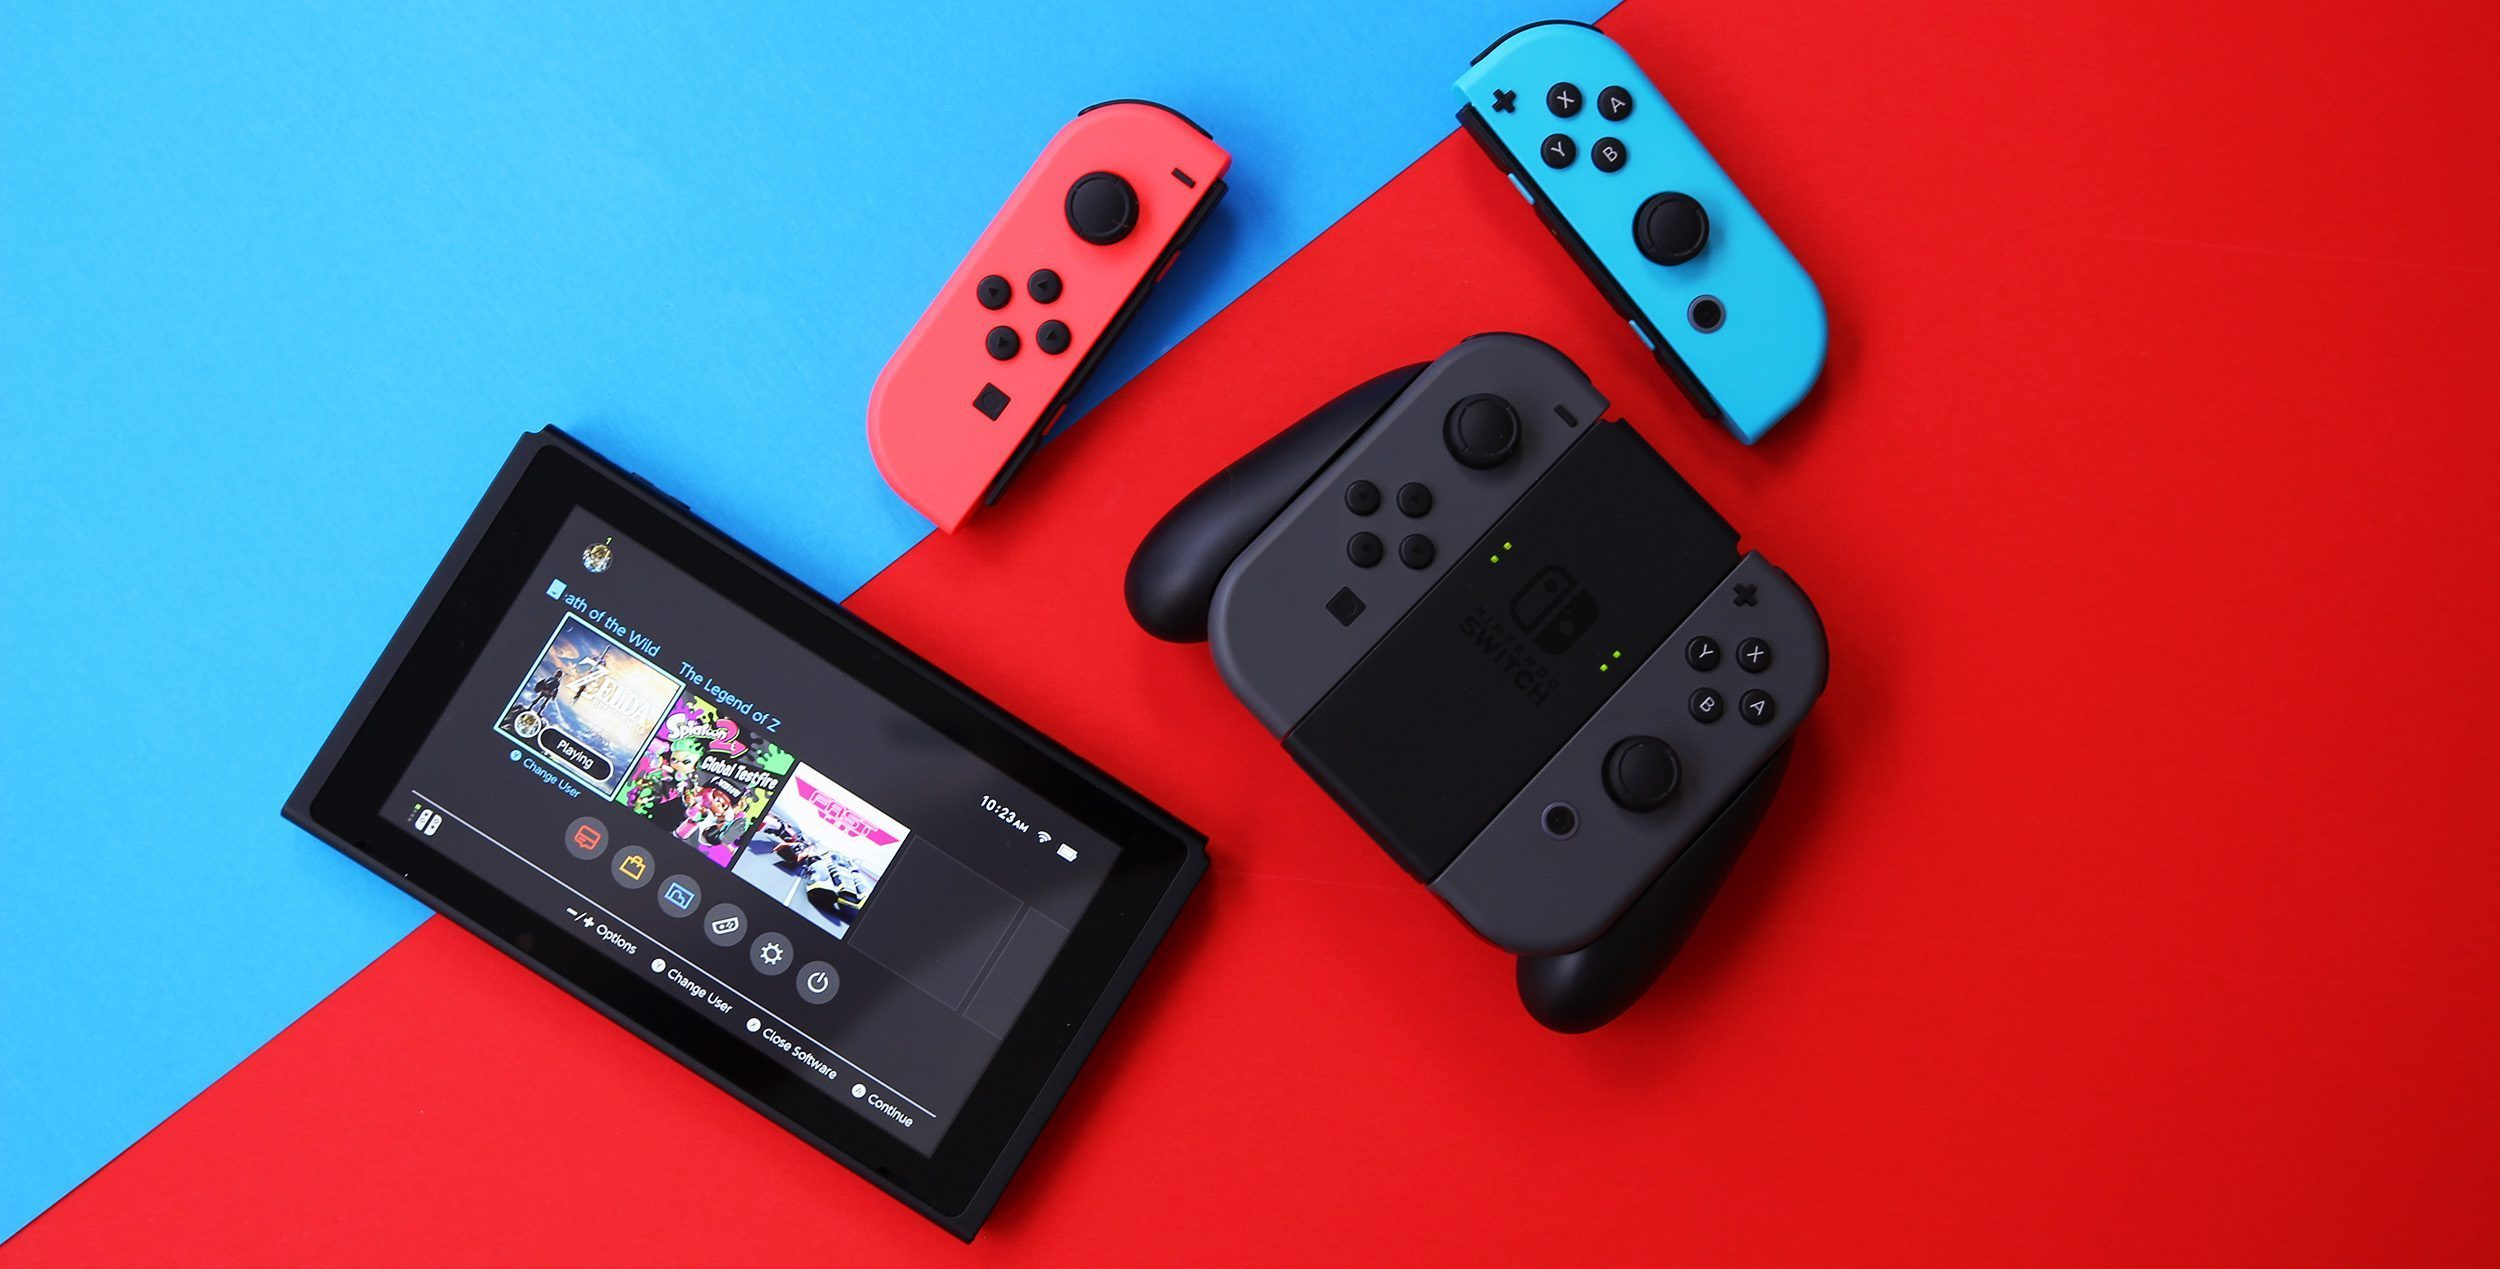 Google Chrome Nintendo Swtch joy-con